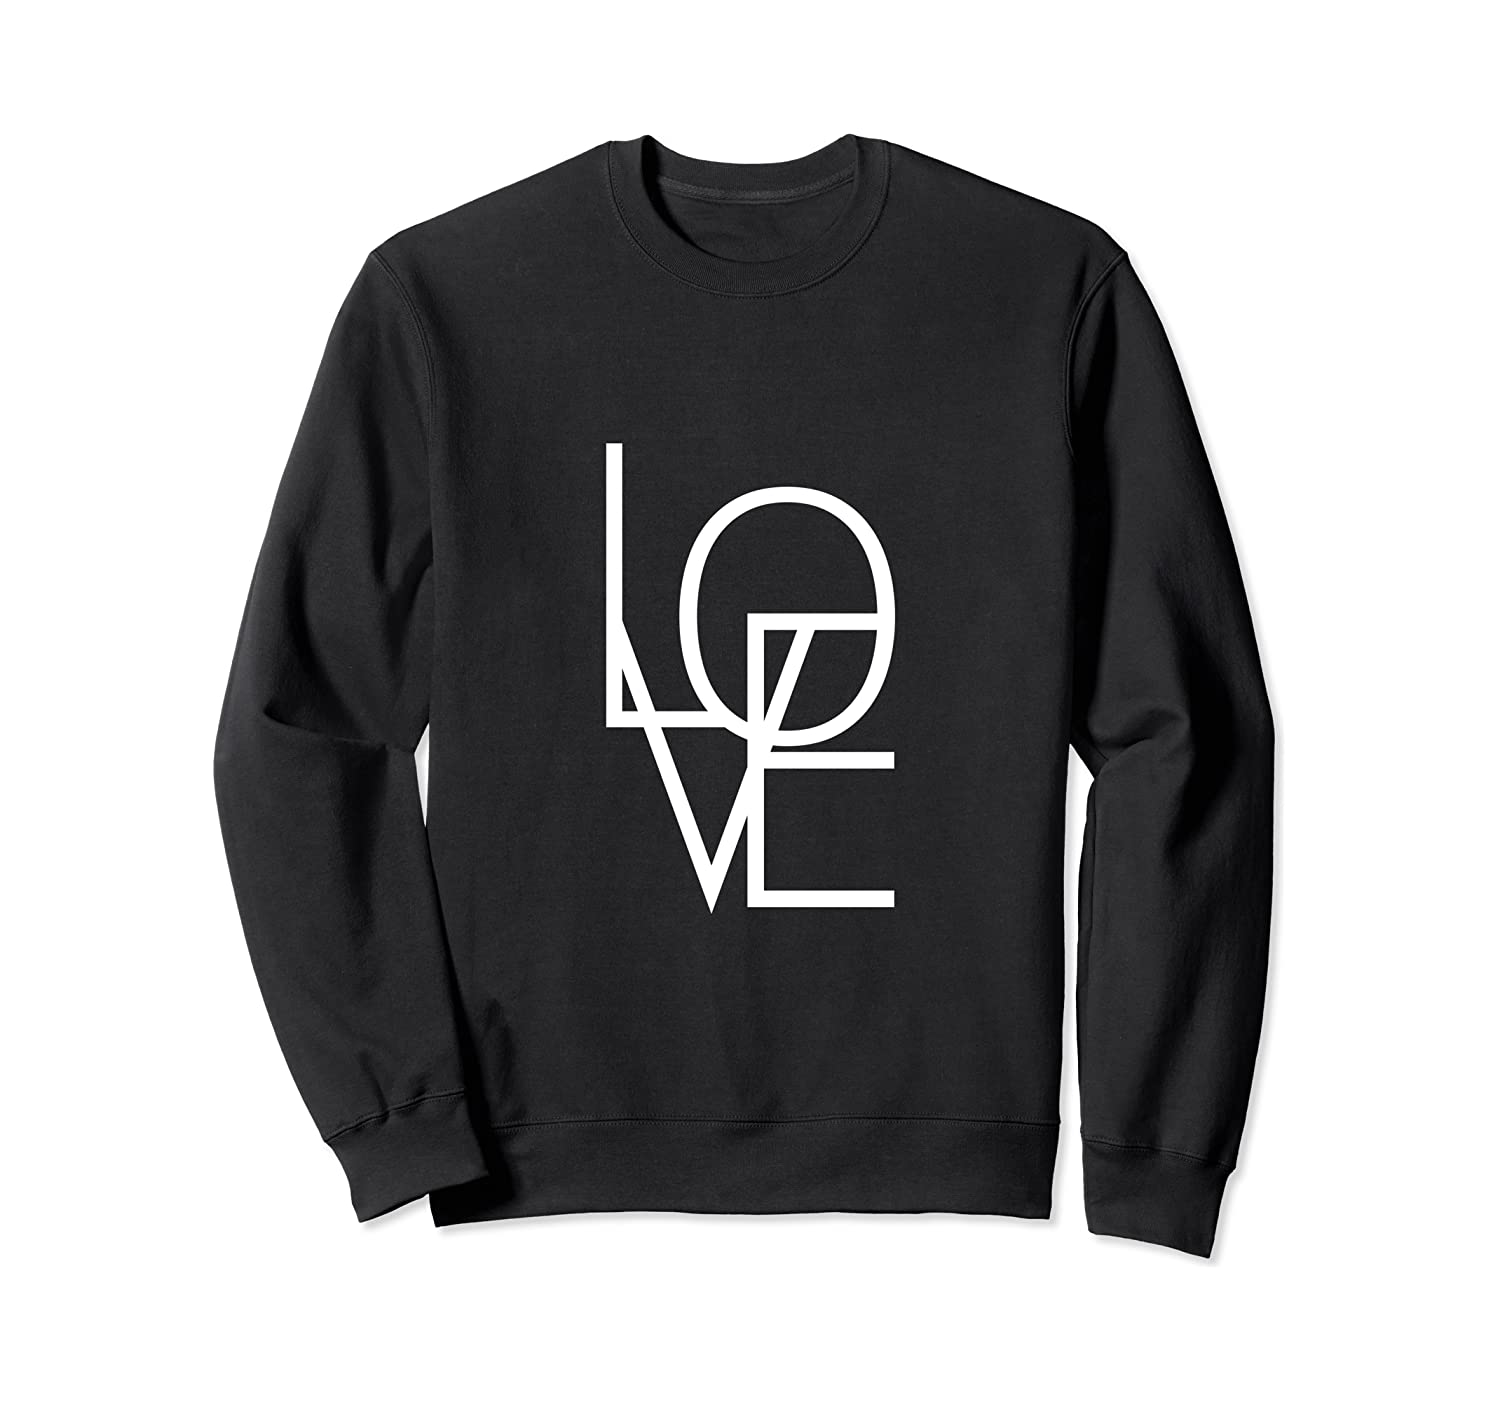 Love Geometric White Text Sweatshirt